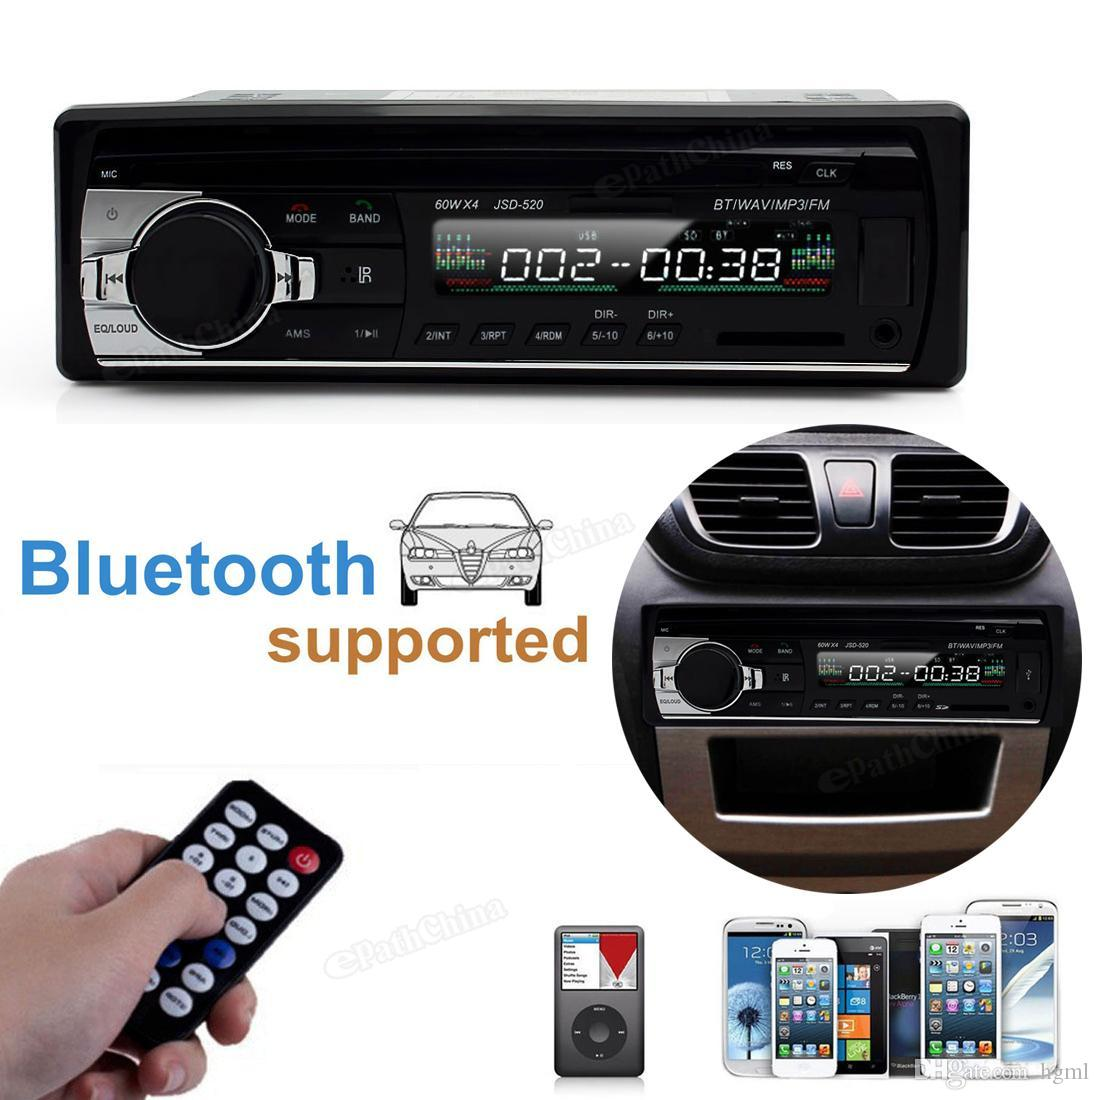 Digital bluetooth hands free car stereo audio mp3 usb sd fm player with in dash slot cec_815 the best car audio system the best car audio systems from hgml